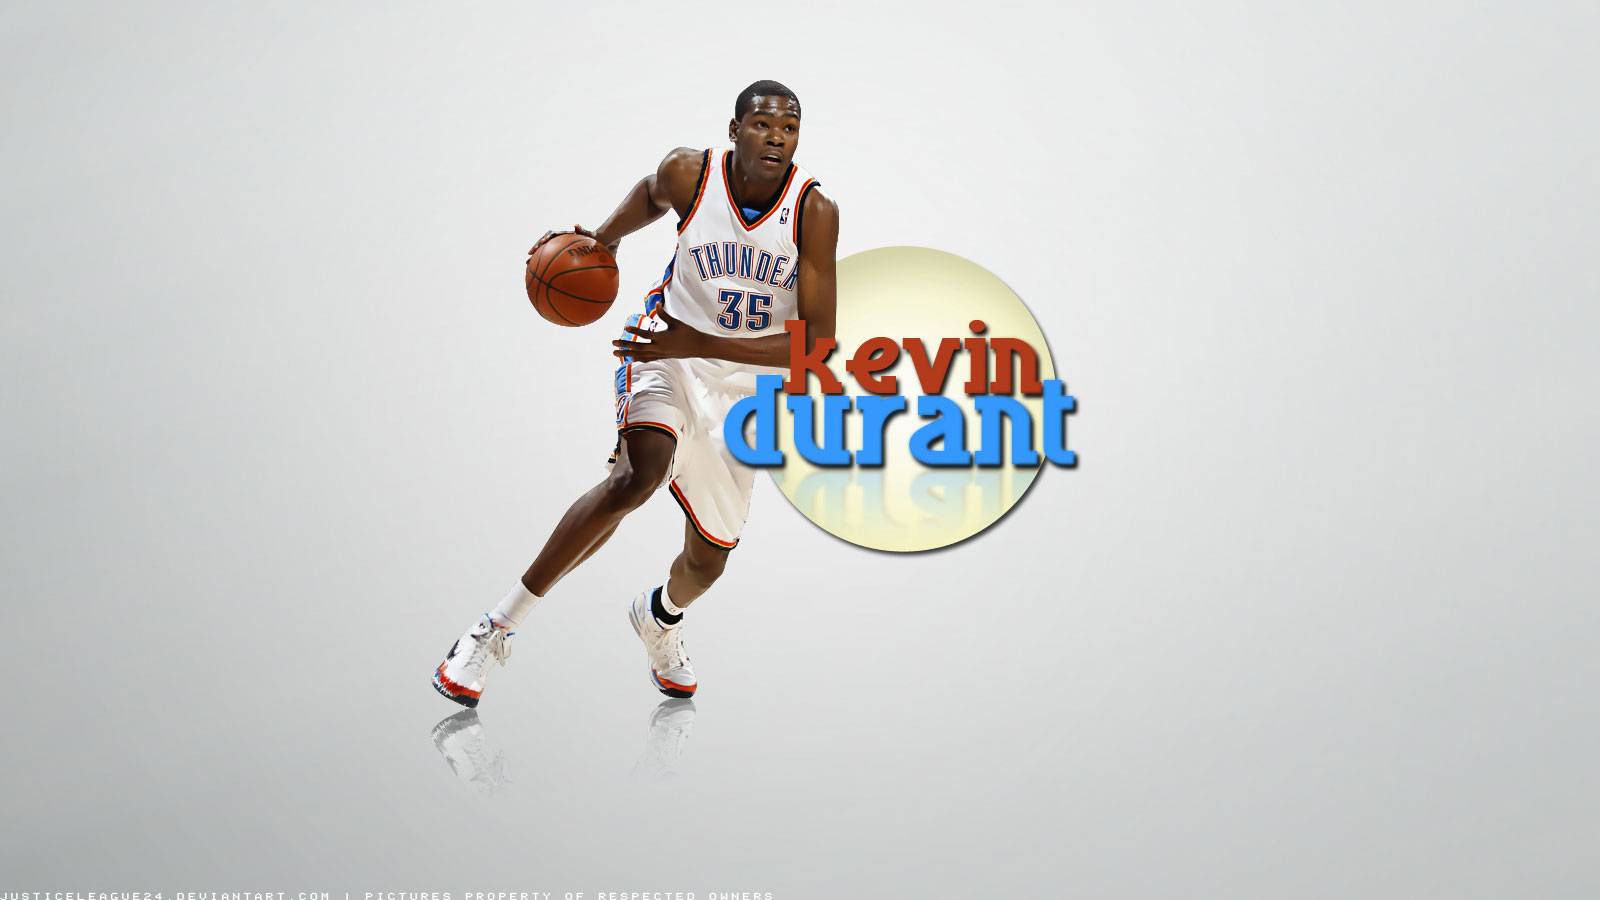 widescreen wallpaper of Kevin Durant who became youngest leading scorer